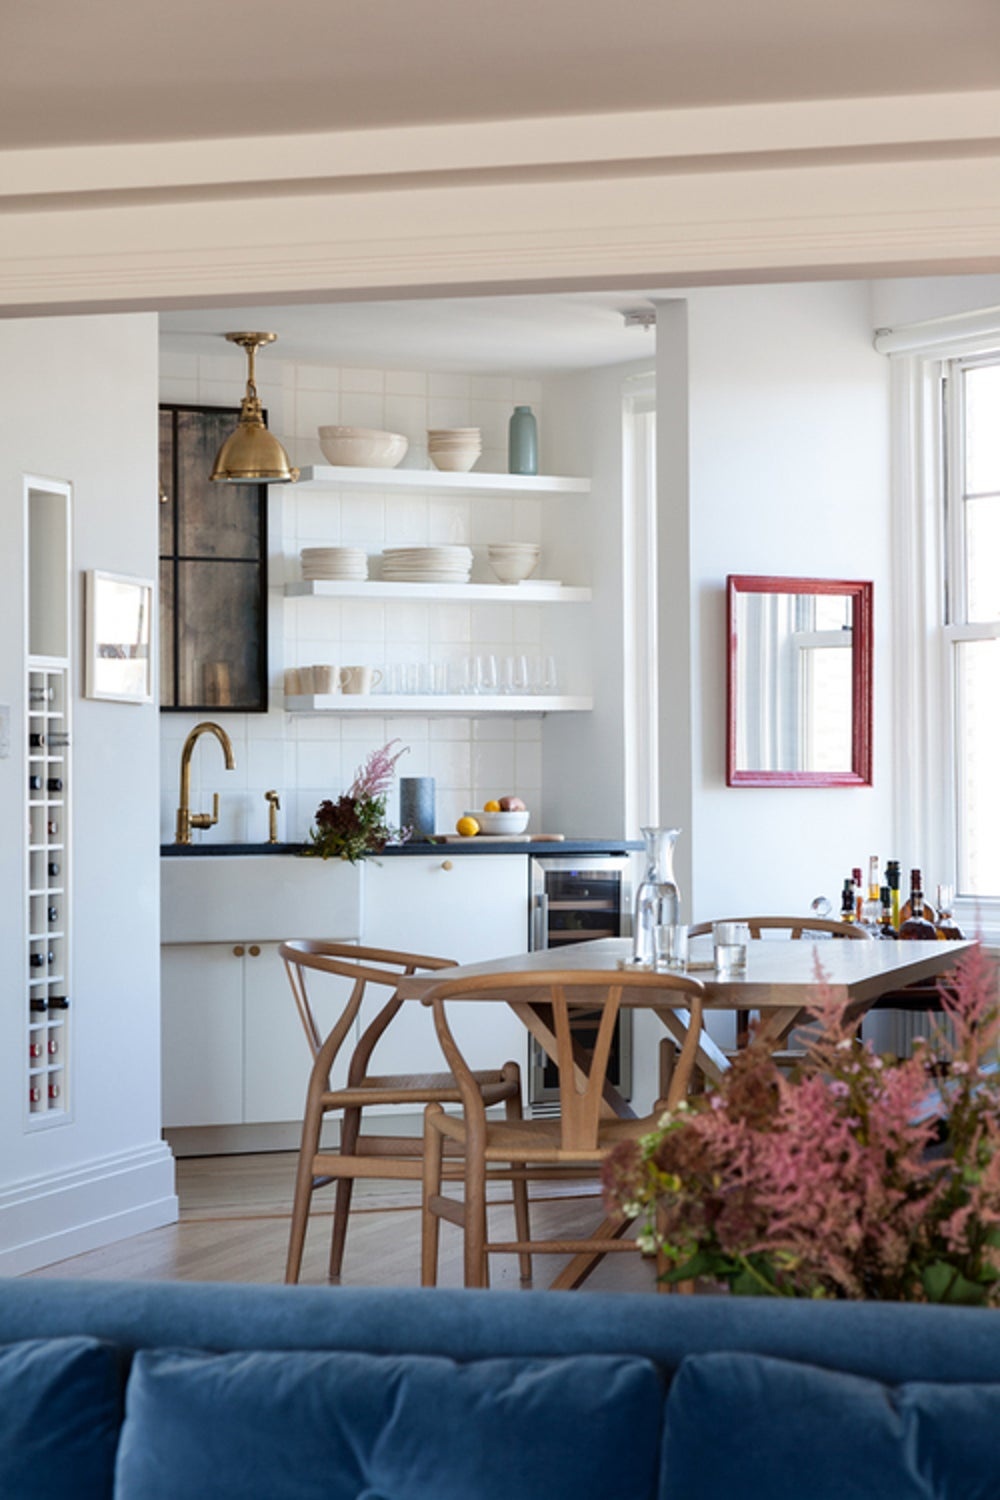 Kitchen by Ashe + Leandro on 1stdibs